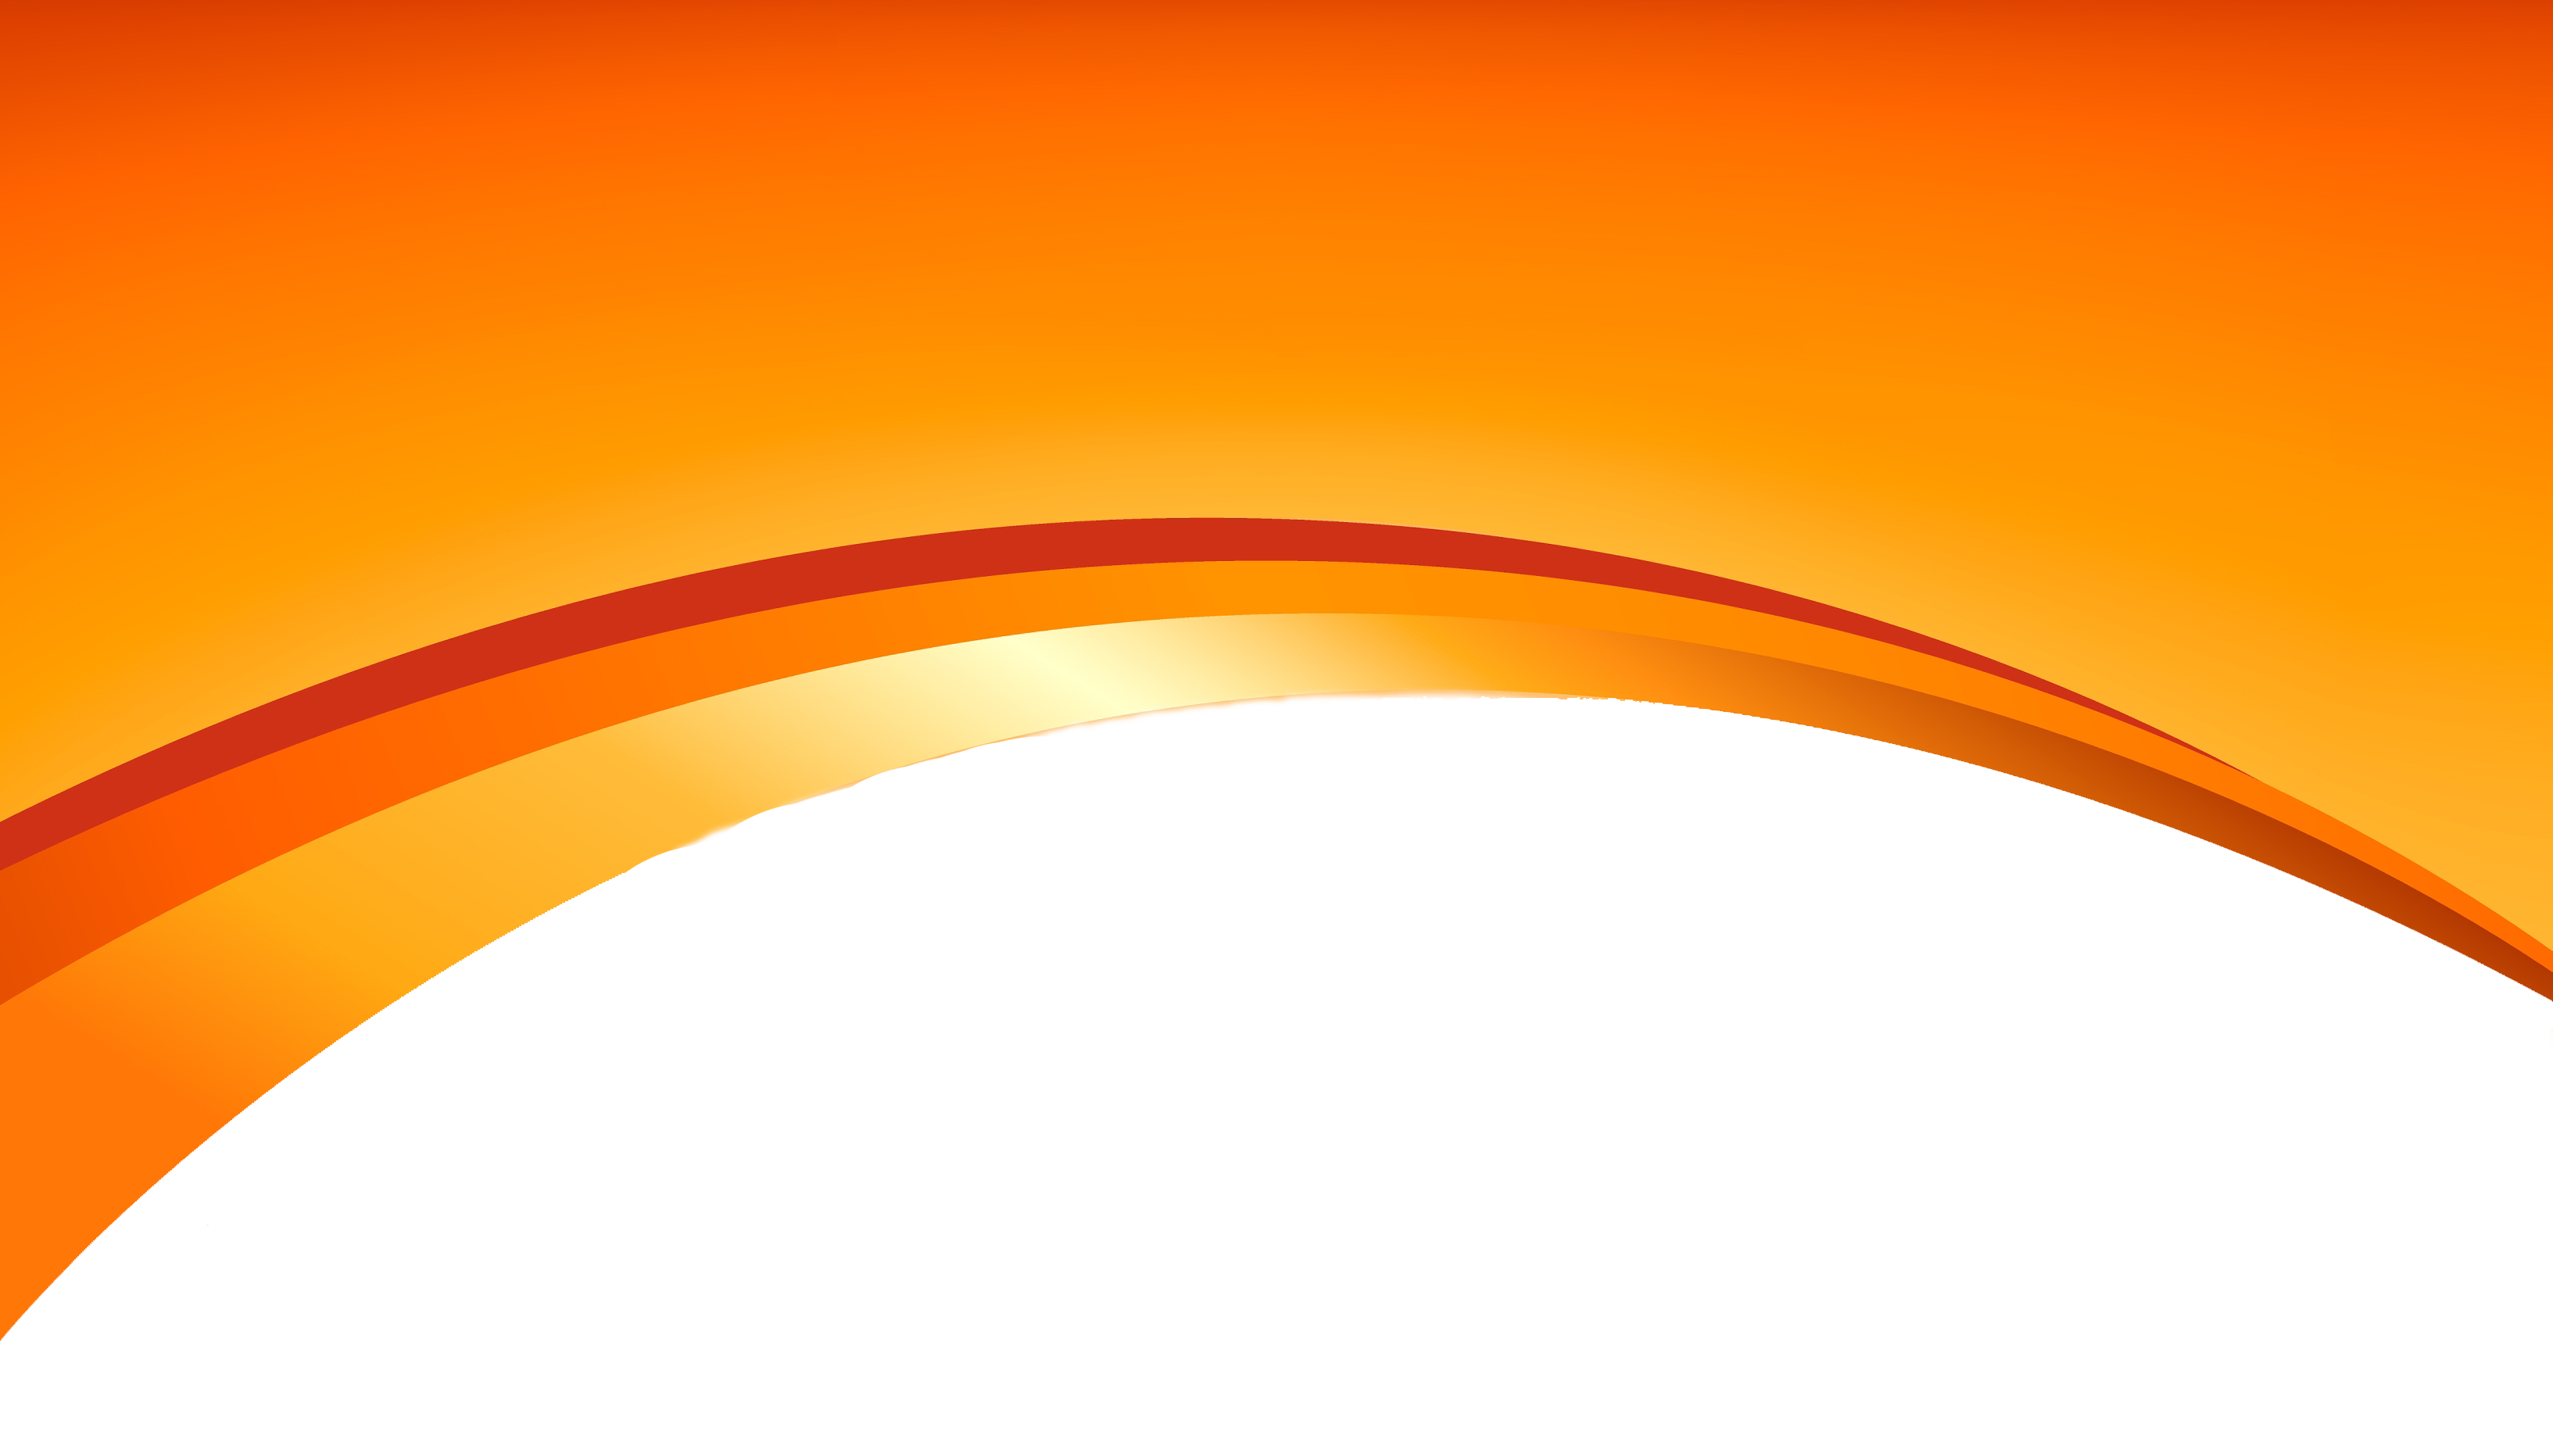 Bokeh vector orange. Abstract lines transparent background